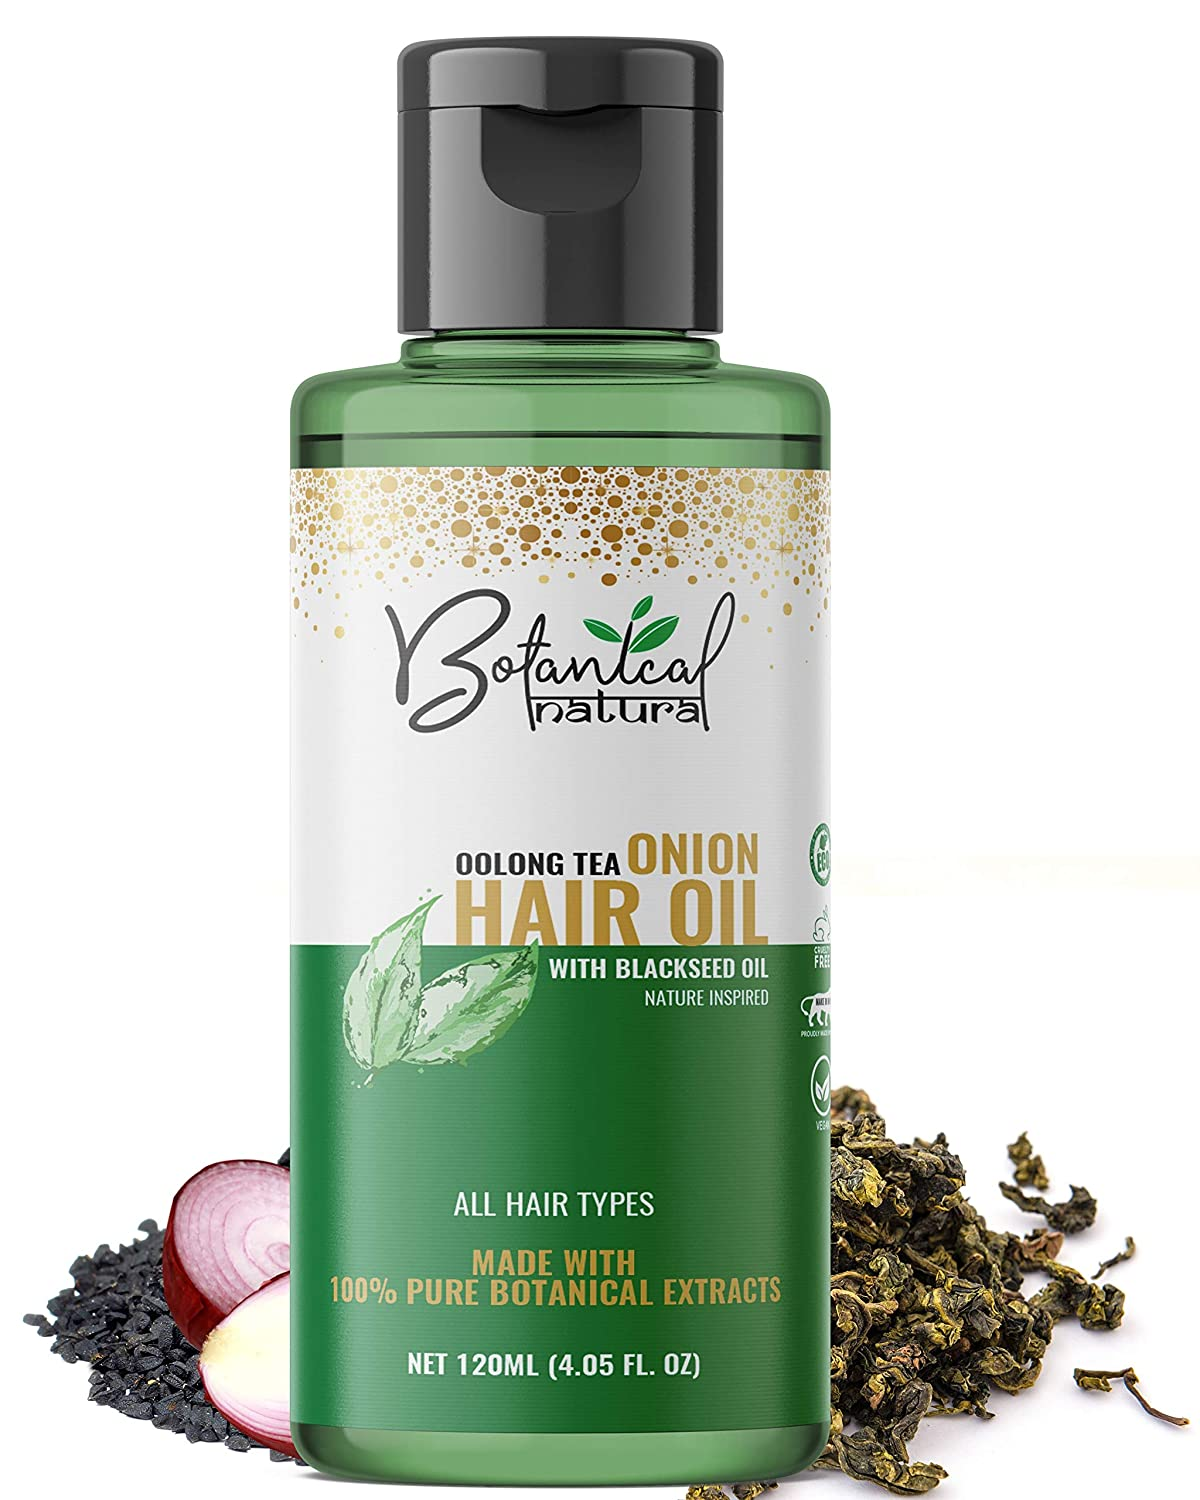 Botanical natura Oolong Tea Onion Hair Oil with Black Seed Oil